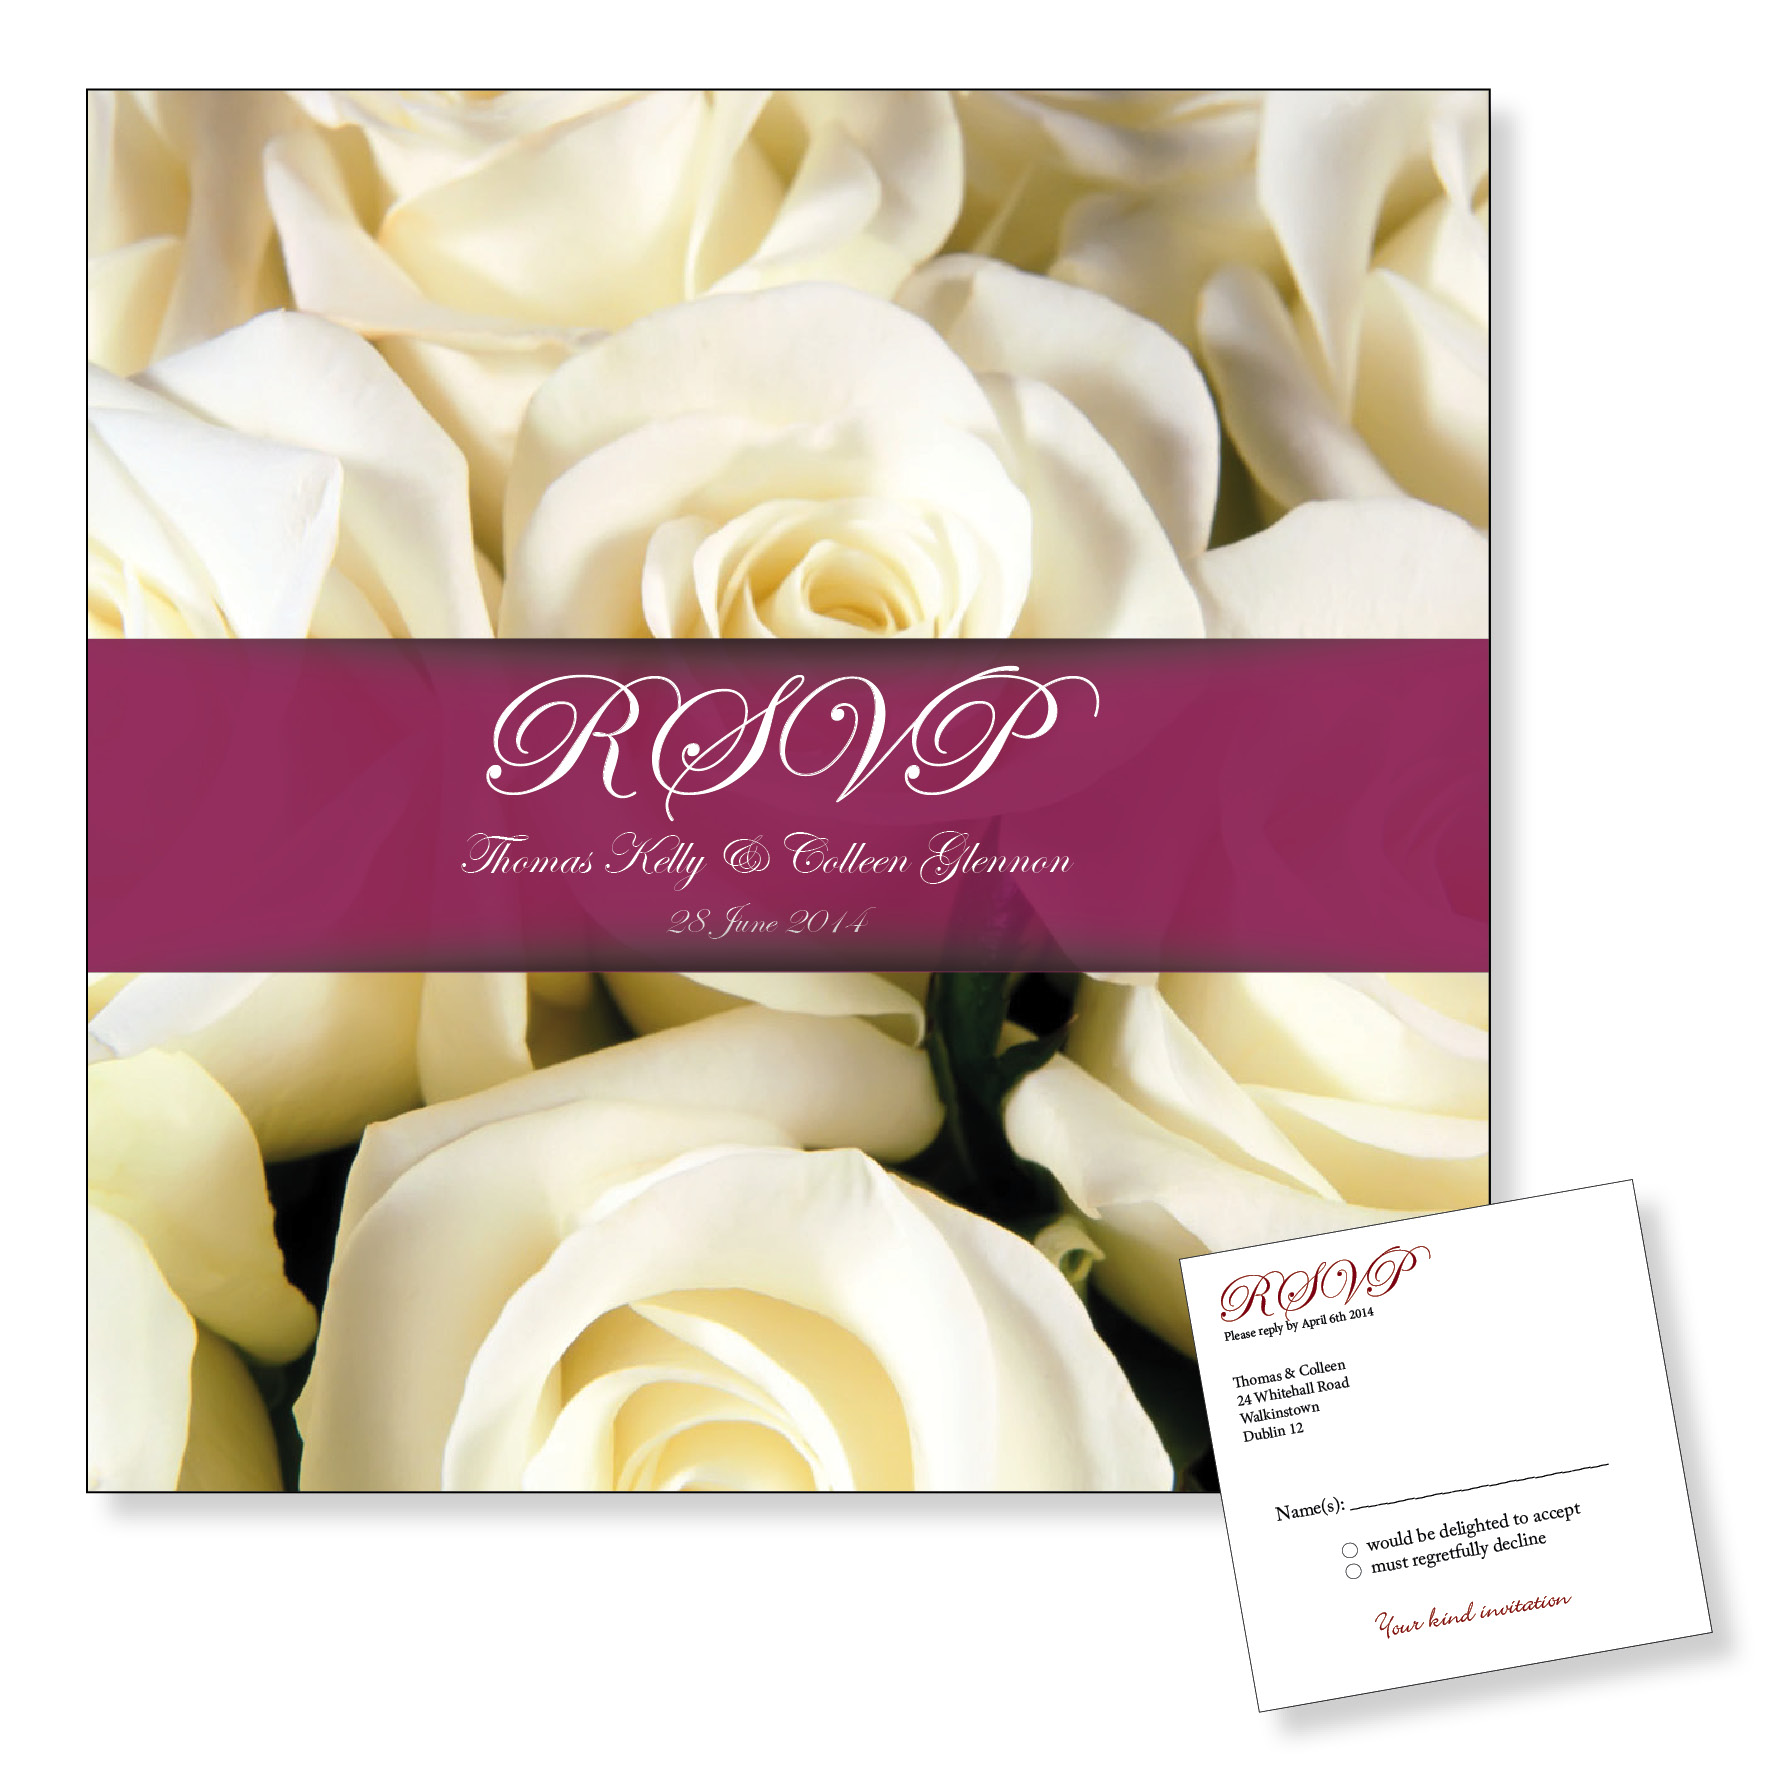 Reply Card - White Roses